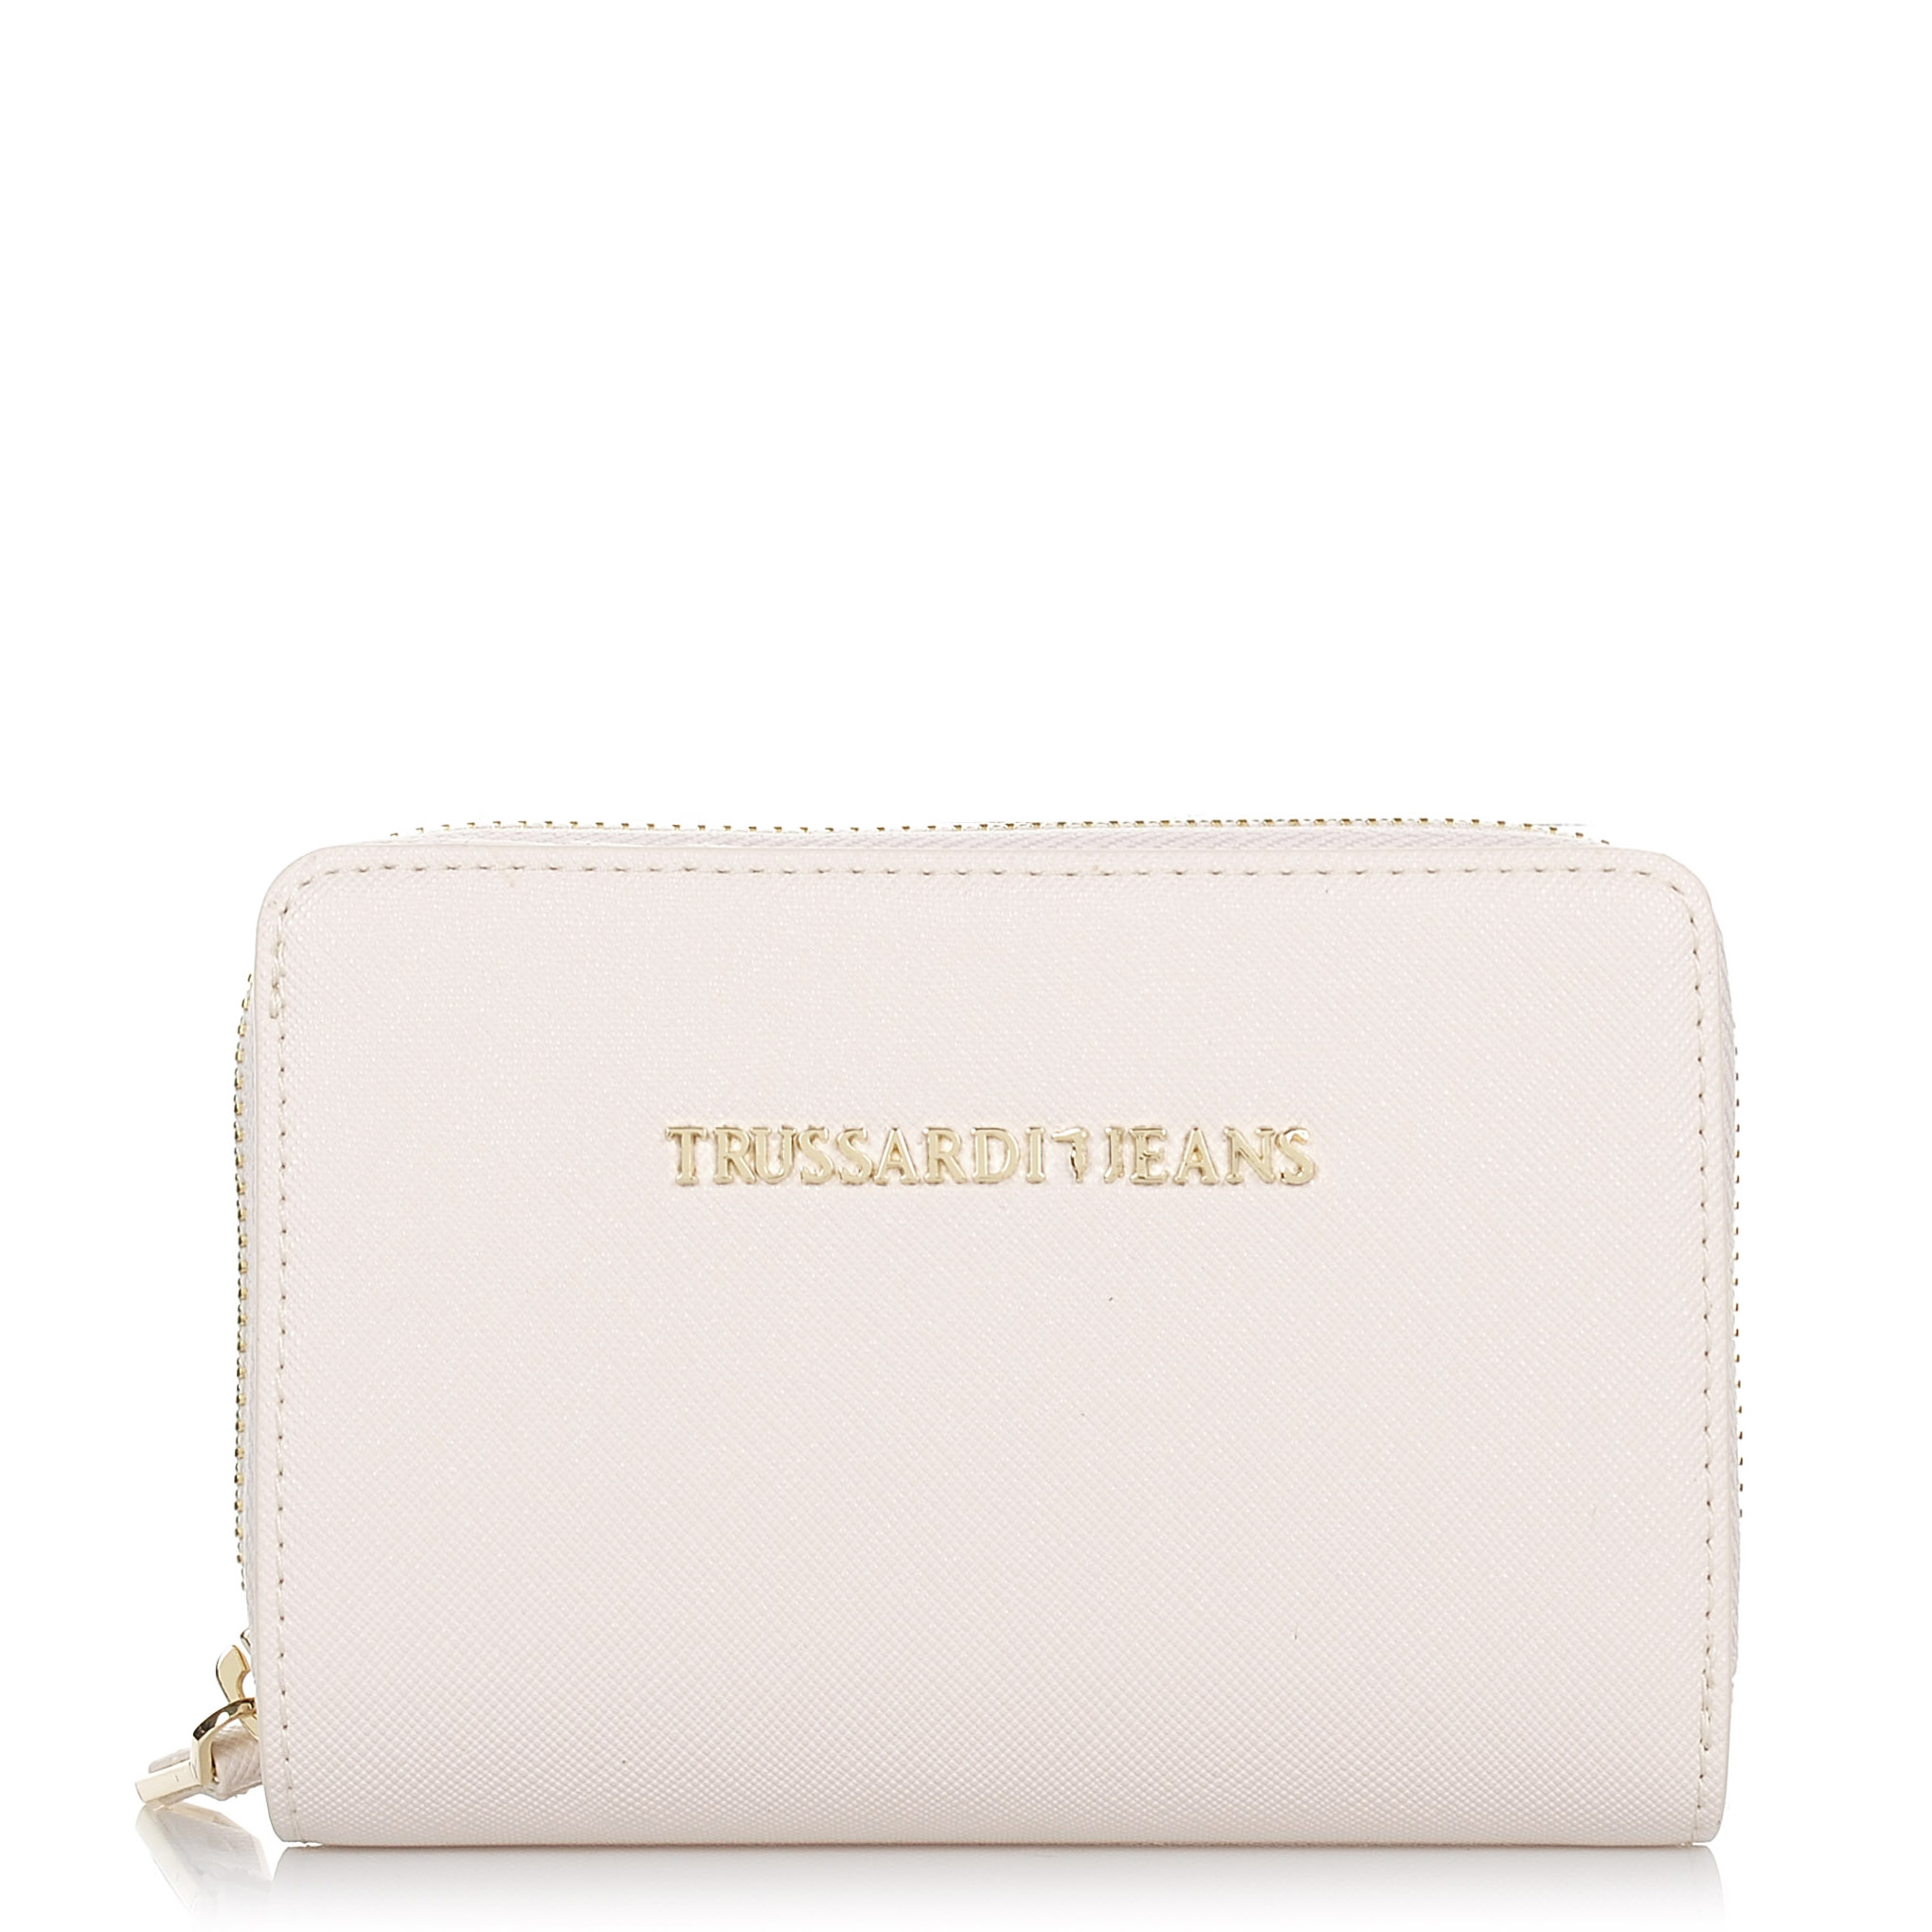 Πορτοφόλι Trussardi Jeans Levanto Ecosaffiano Wallet Medium Zip Around 75W00012